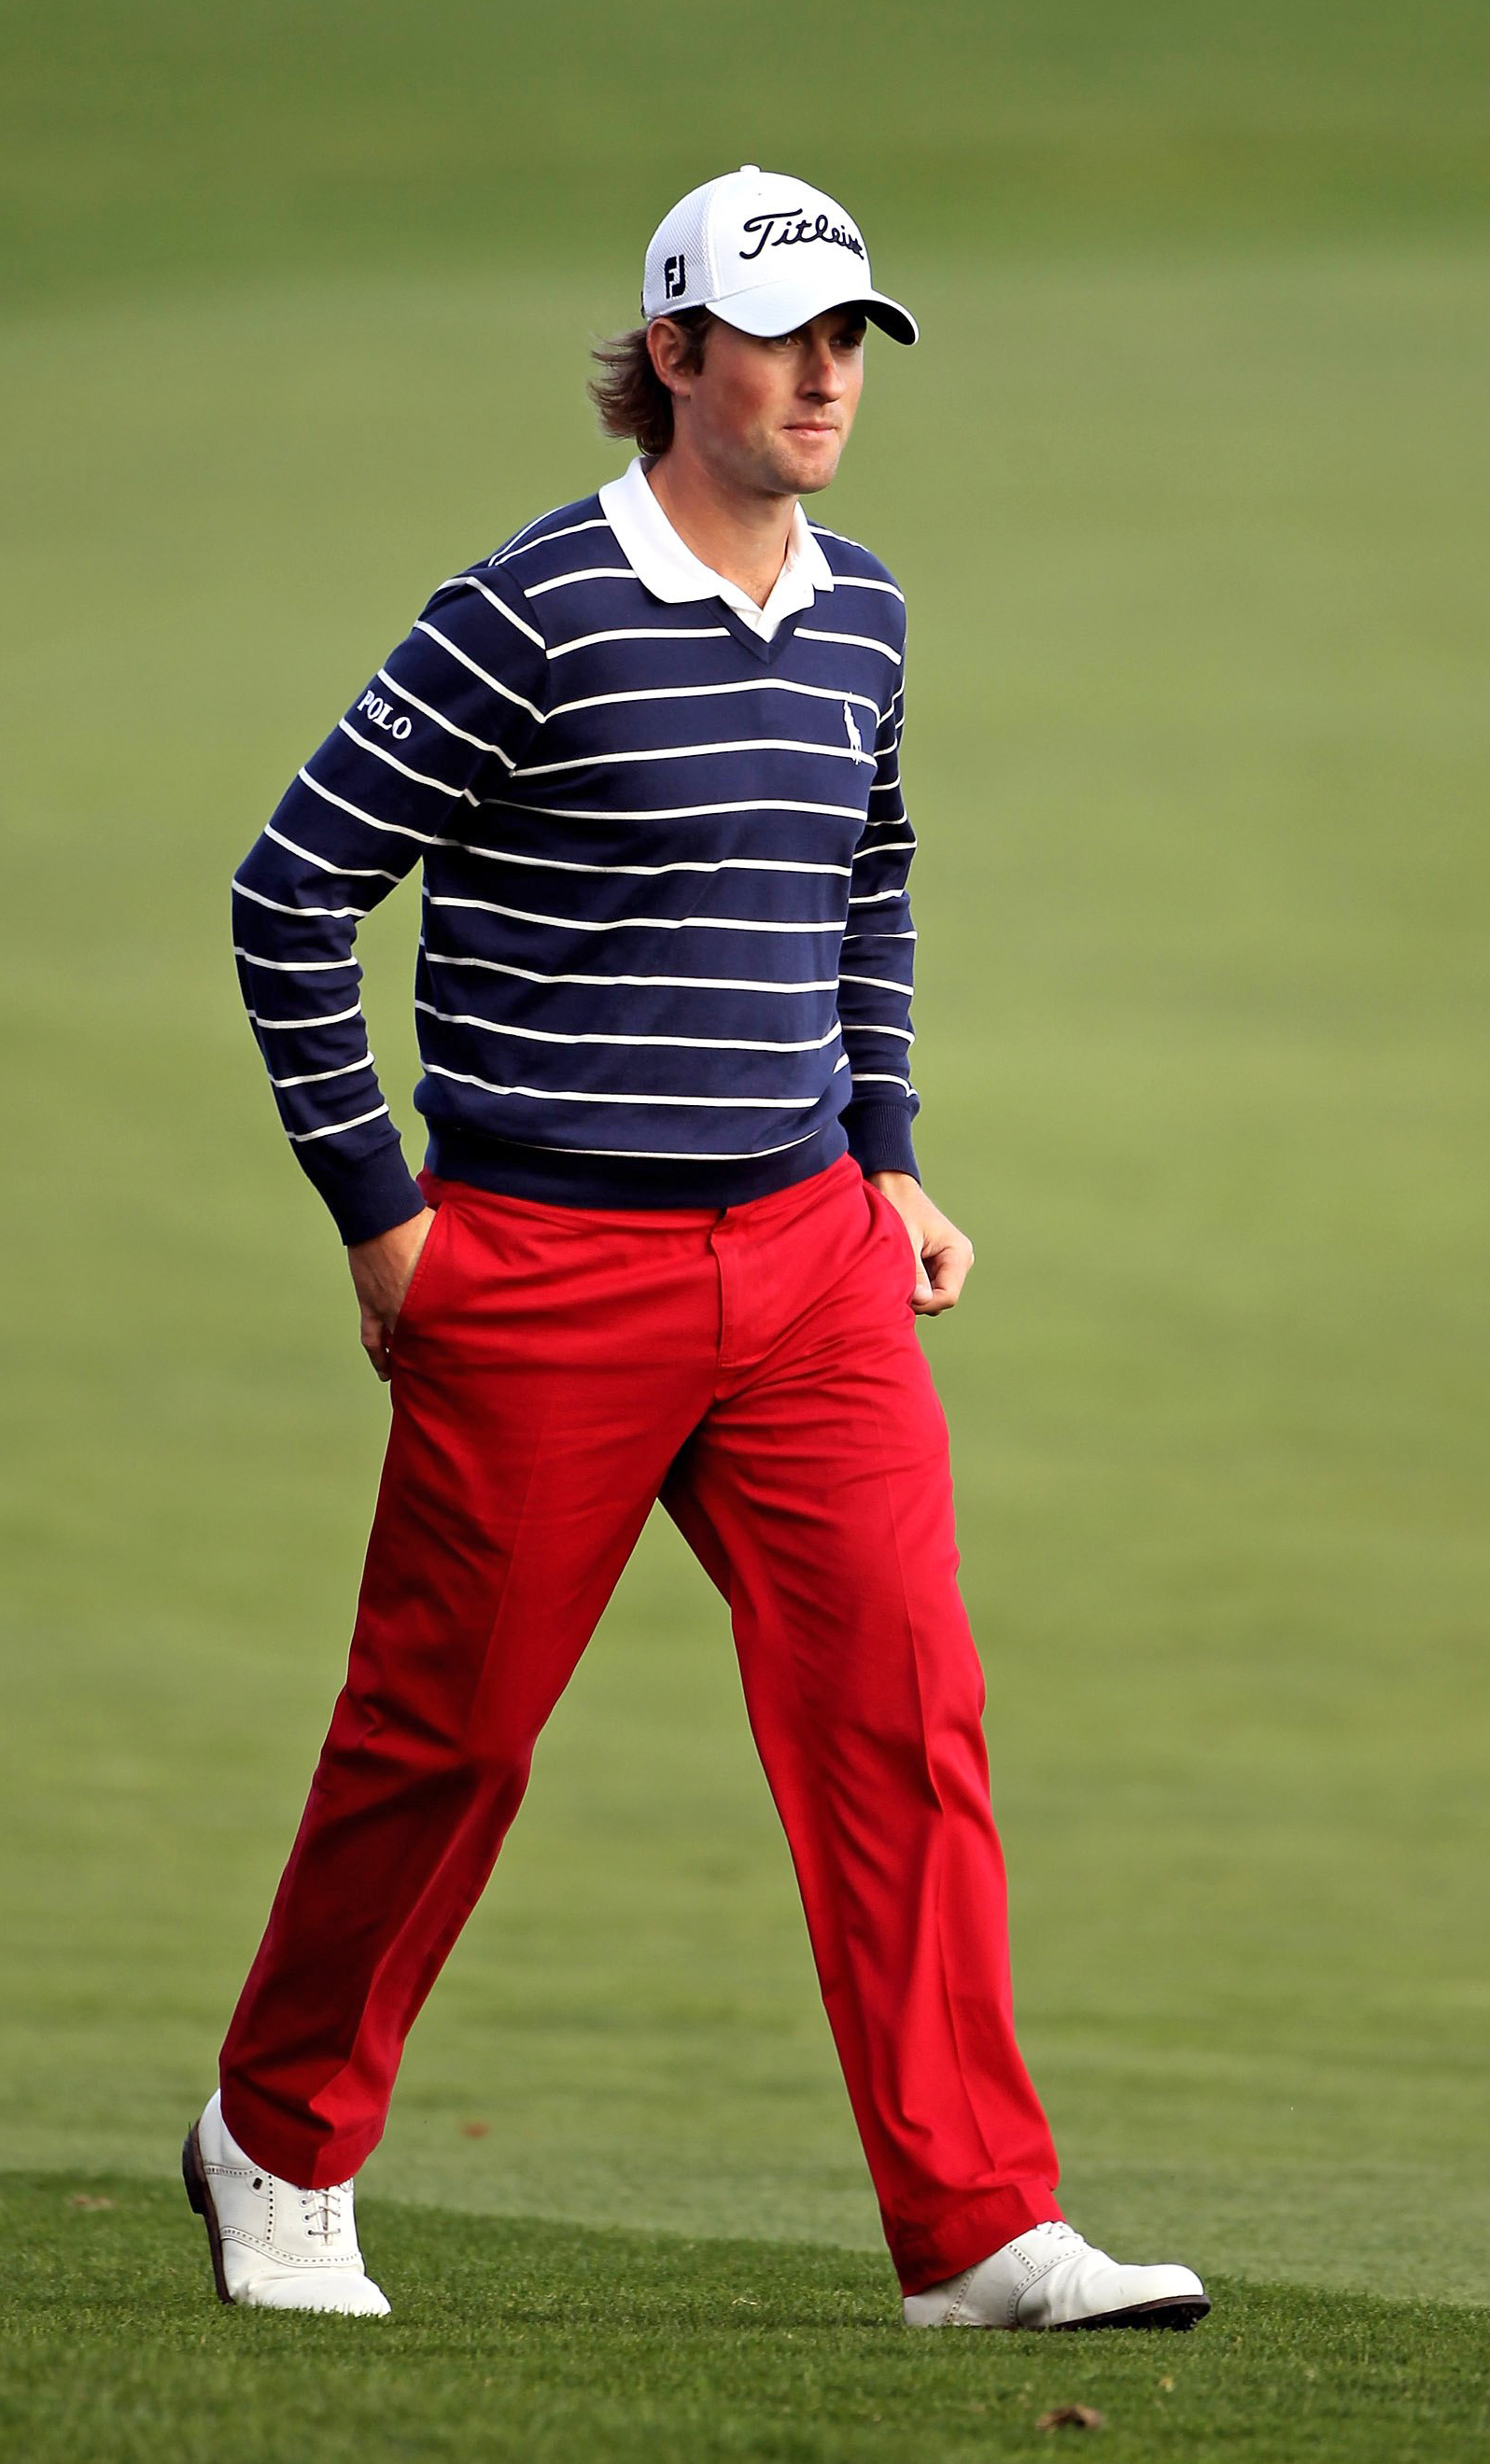 Webb Simpson during the 2010 AT&T Pebble Beach National Pro-Am.